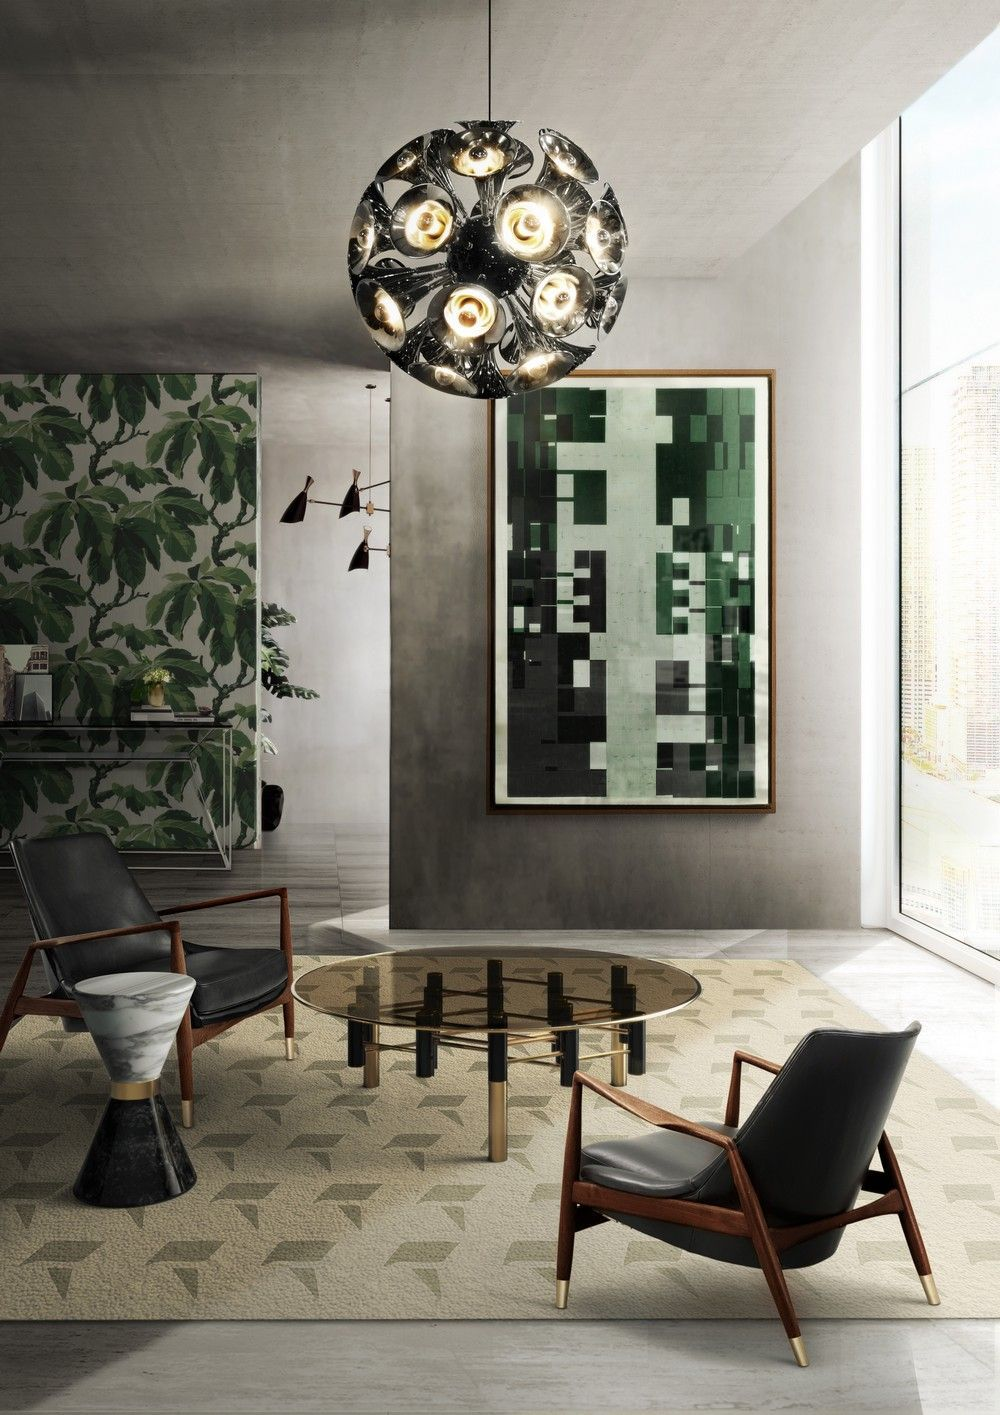 Decorate Like With How Pro To Ahow To Decorate Like A Pro With Innenarchitektur Haus Deko Wohnzimmer Kronleuchter